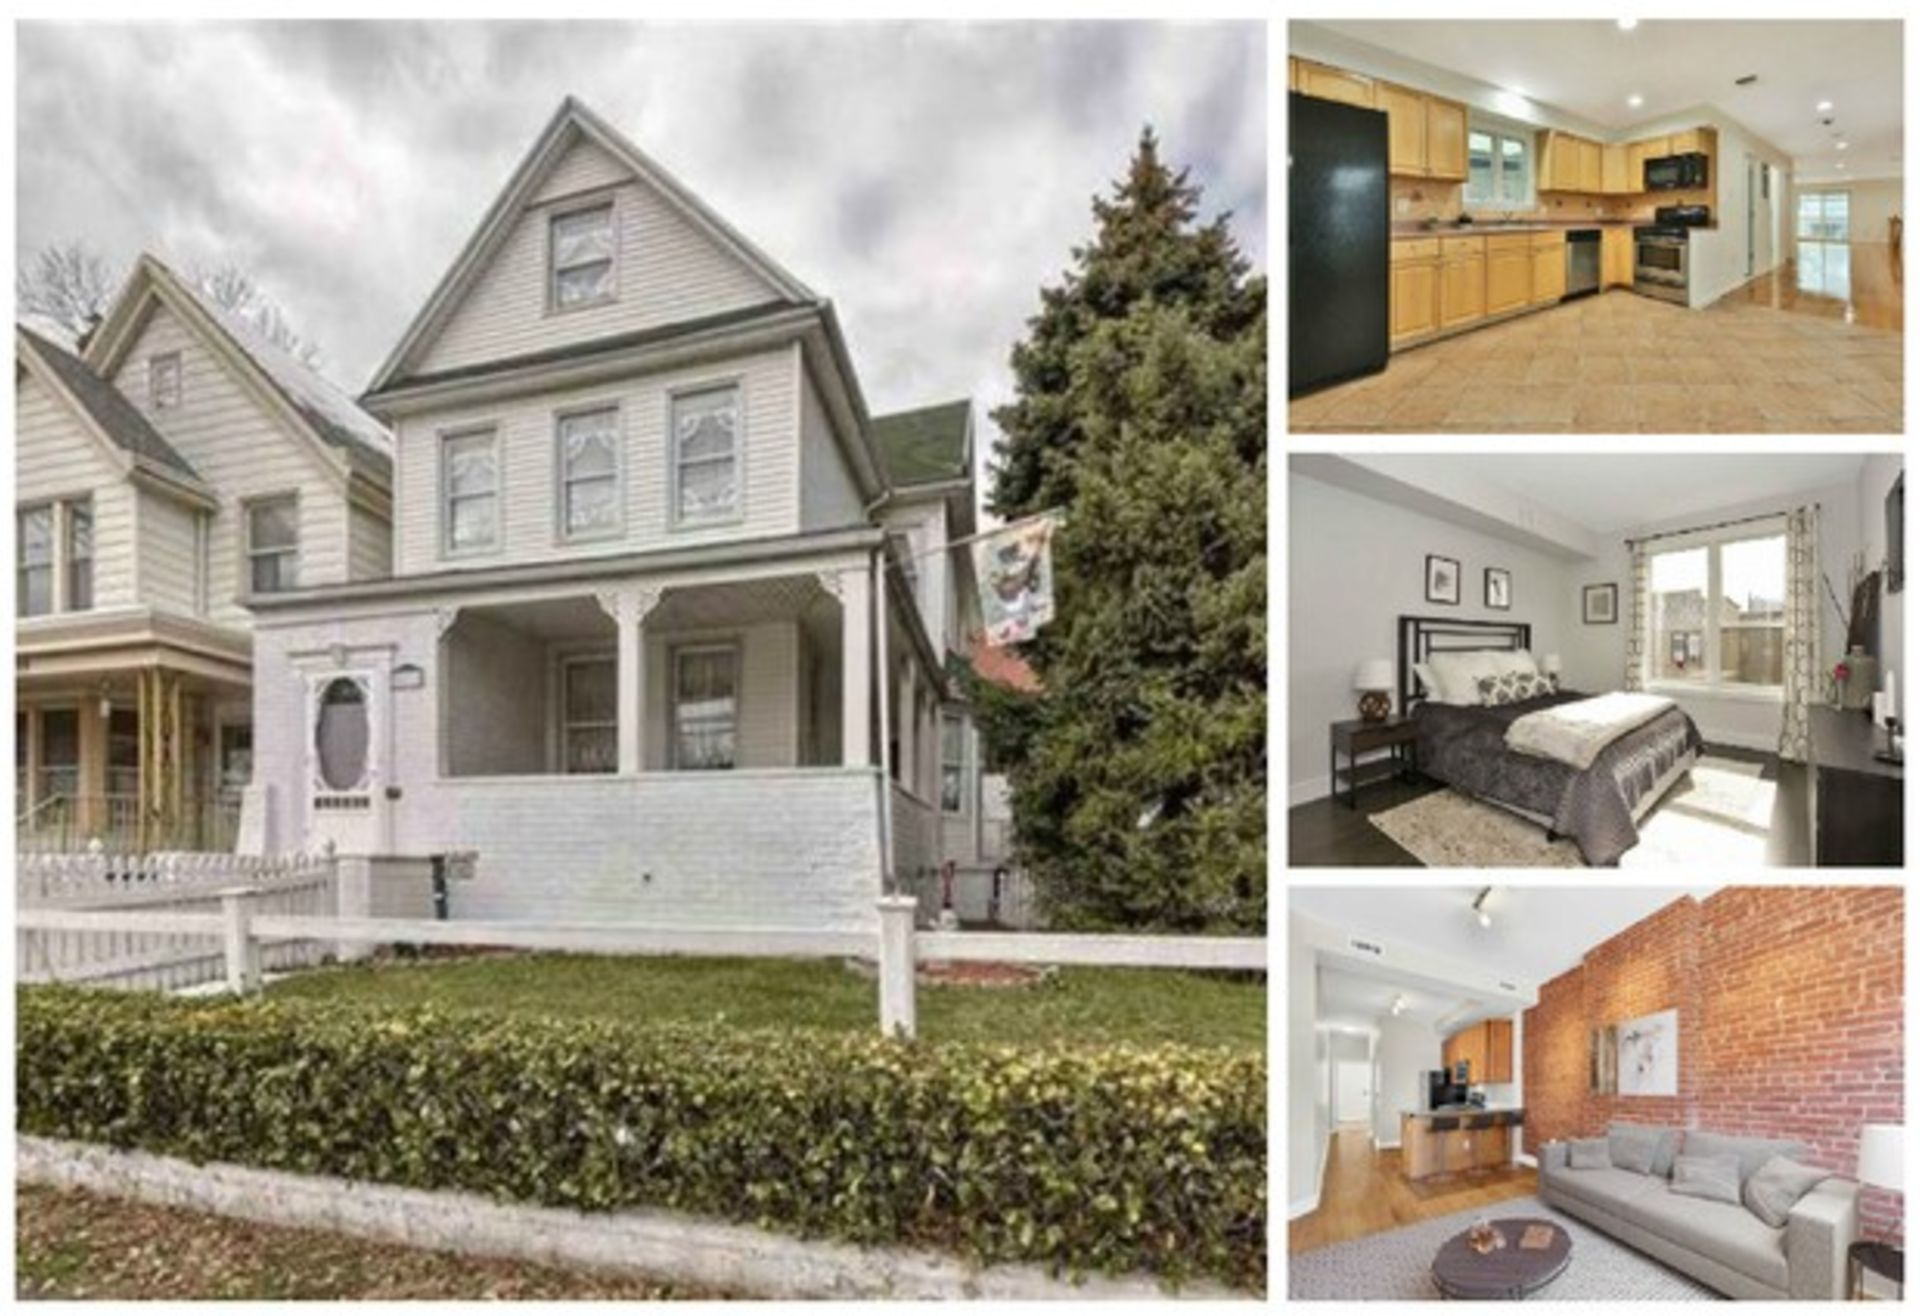 From cozy to chic: What $500K buys you in Hudson County real estate